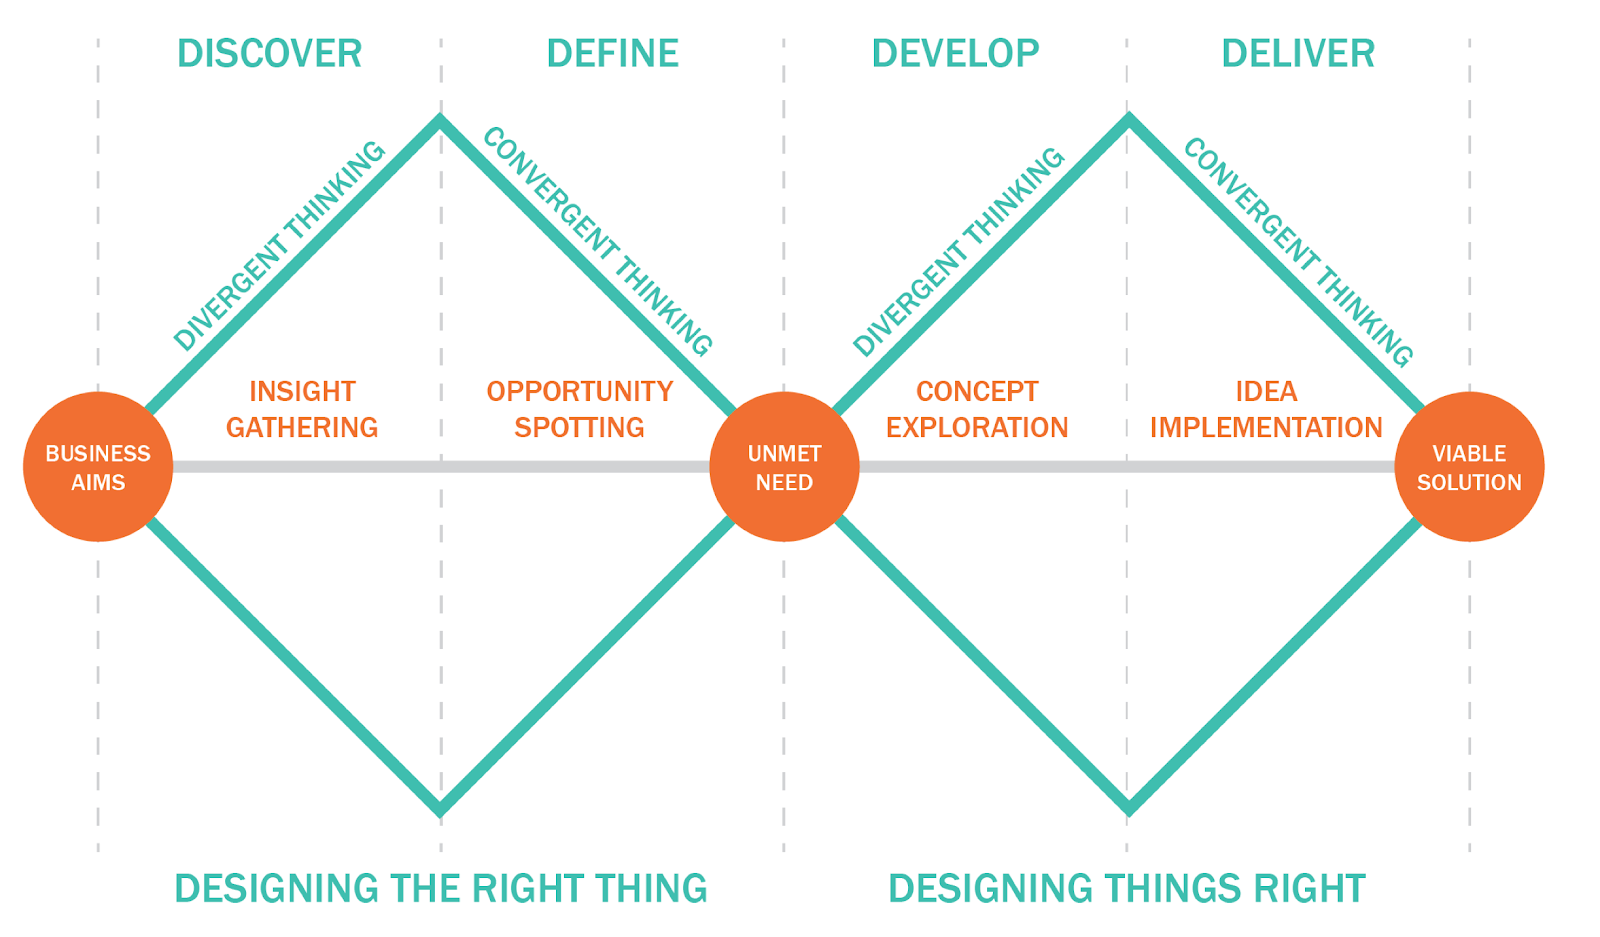 A diagram illustrating the phases of Design Thinking